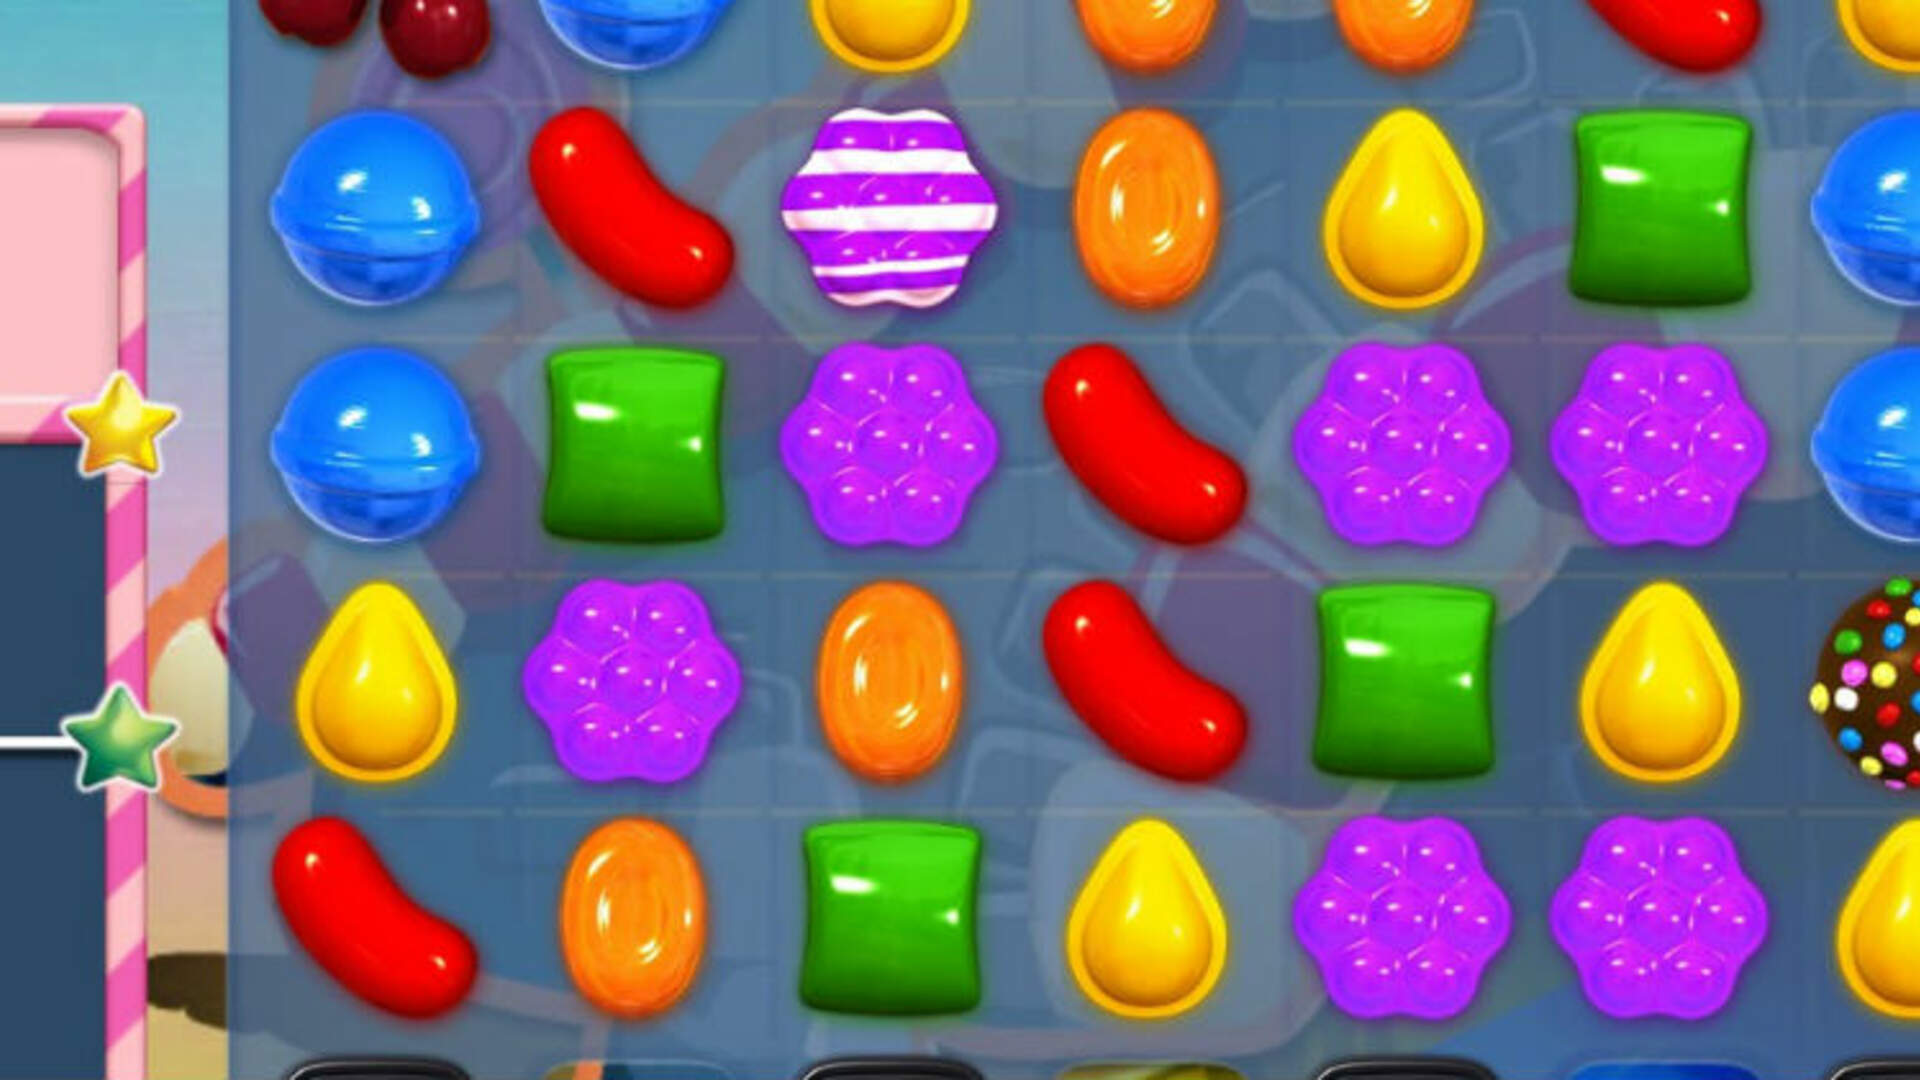 Candy Crush Saga: How to Make Wrapped Candies, and Other Hints, Tips, and Strategies